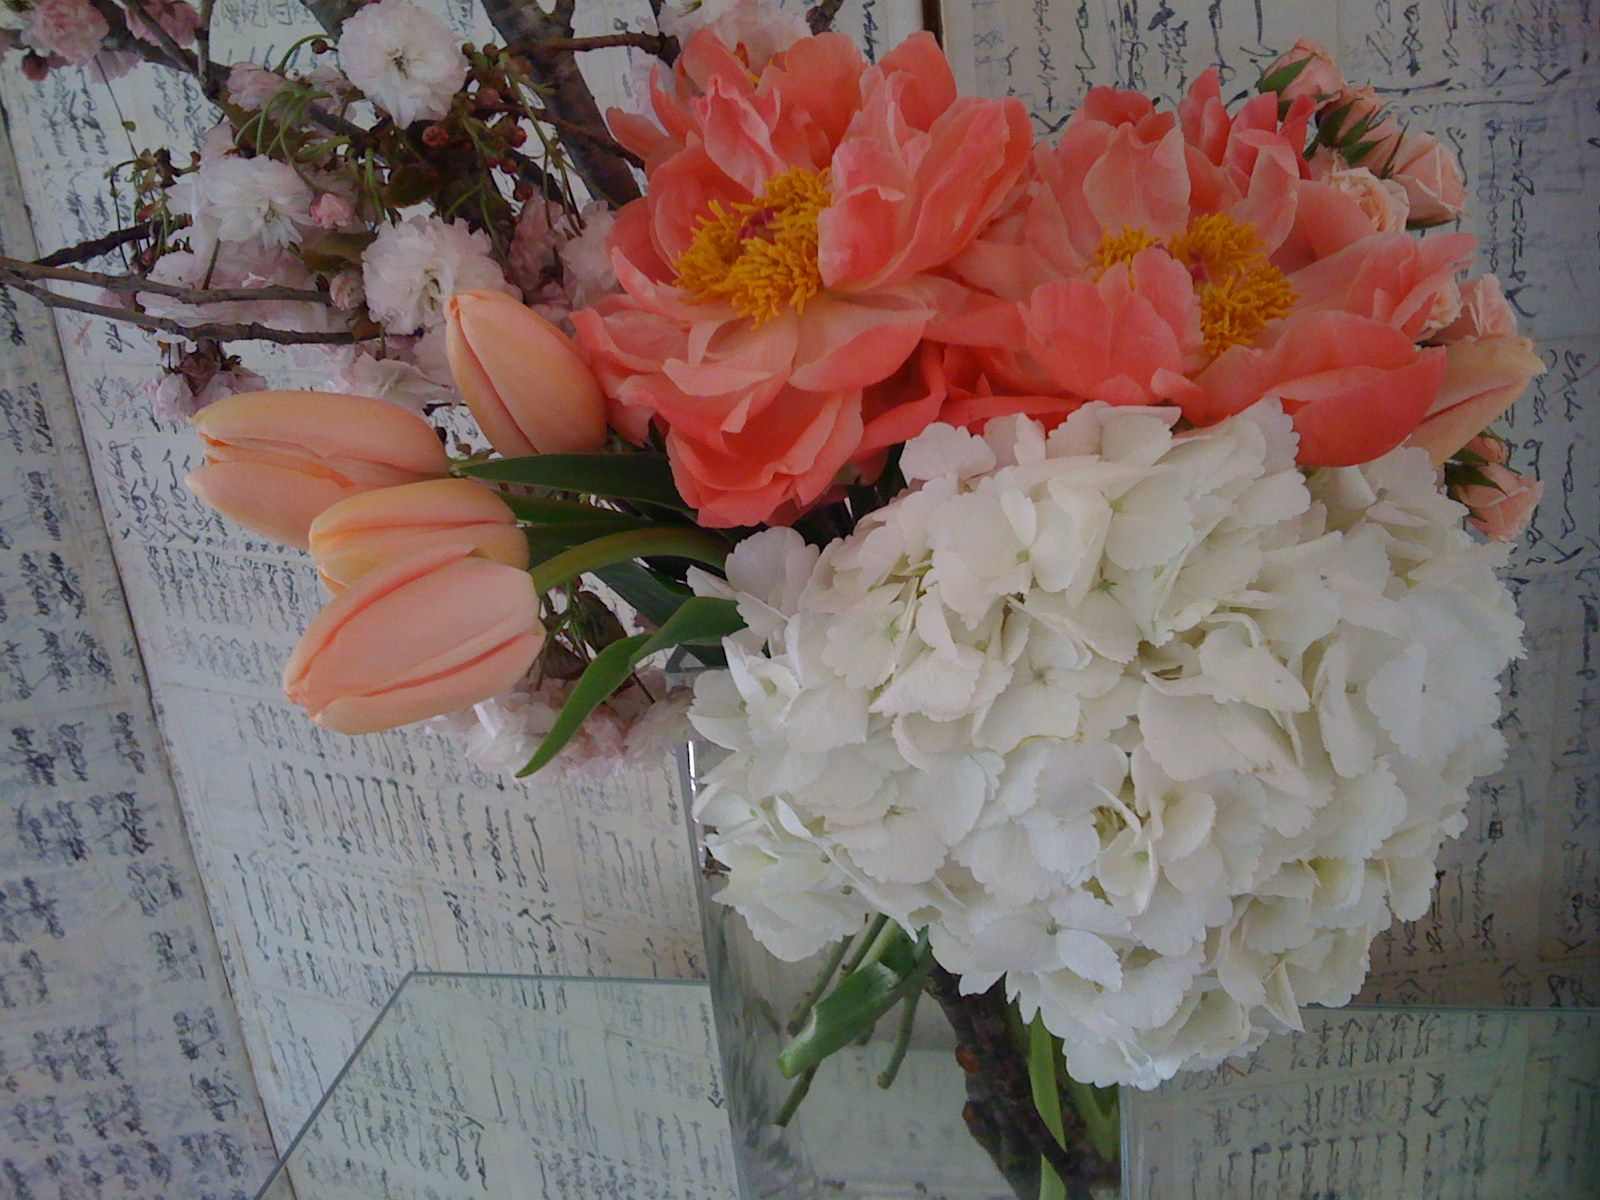 Easter Arrangement Tall 10 Peachy Pink Tulips 5 C Charm Peonies 2 Spray Roses Cherry